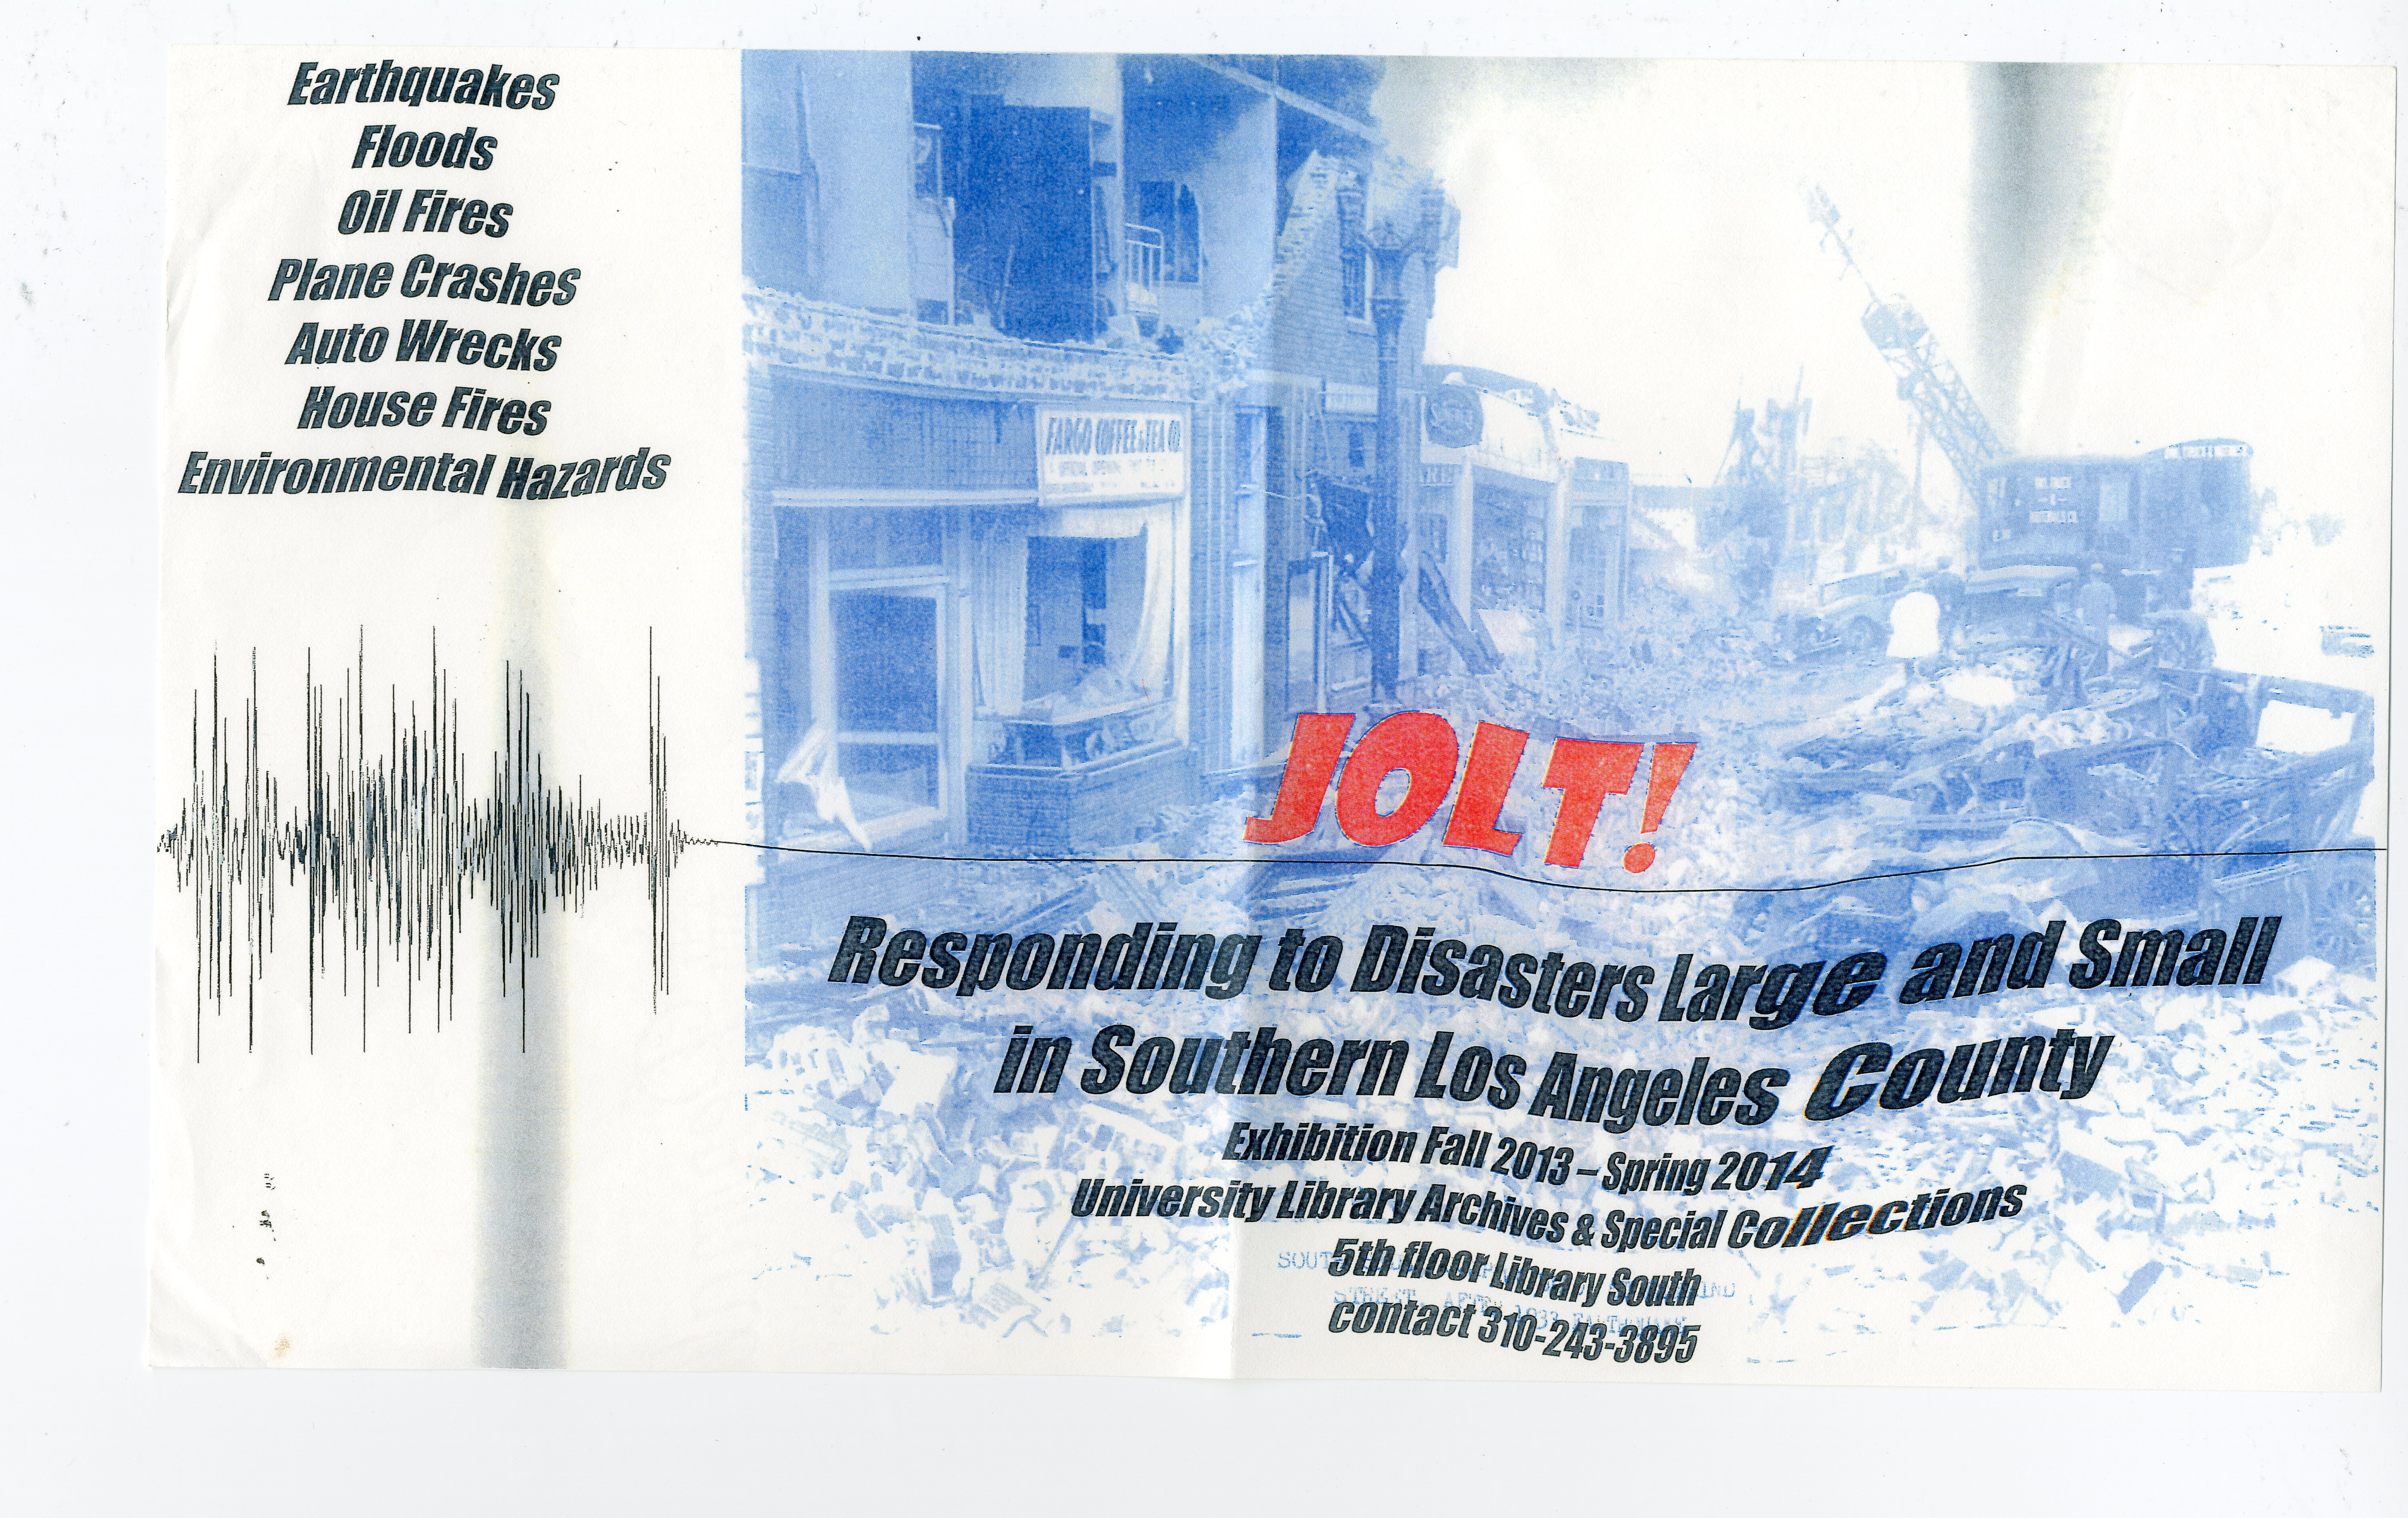 Jolt! Responding to Disasters Large and Small in Southern Los Angeles County exhibit flyer